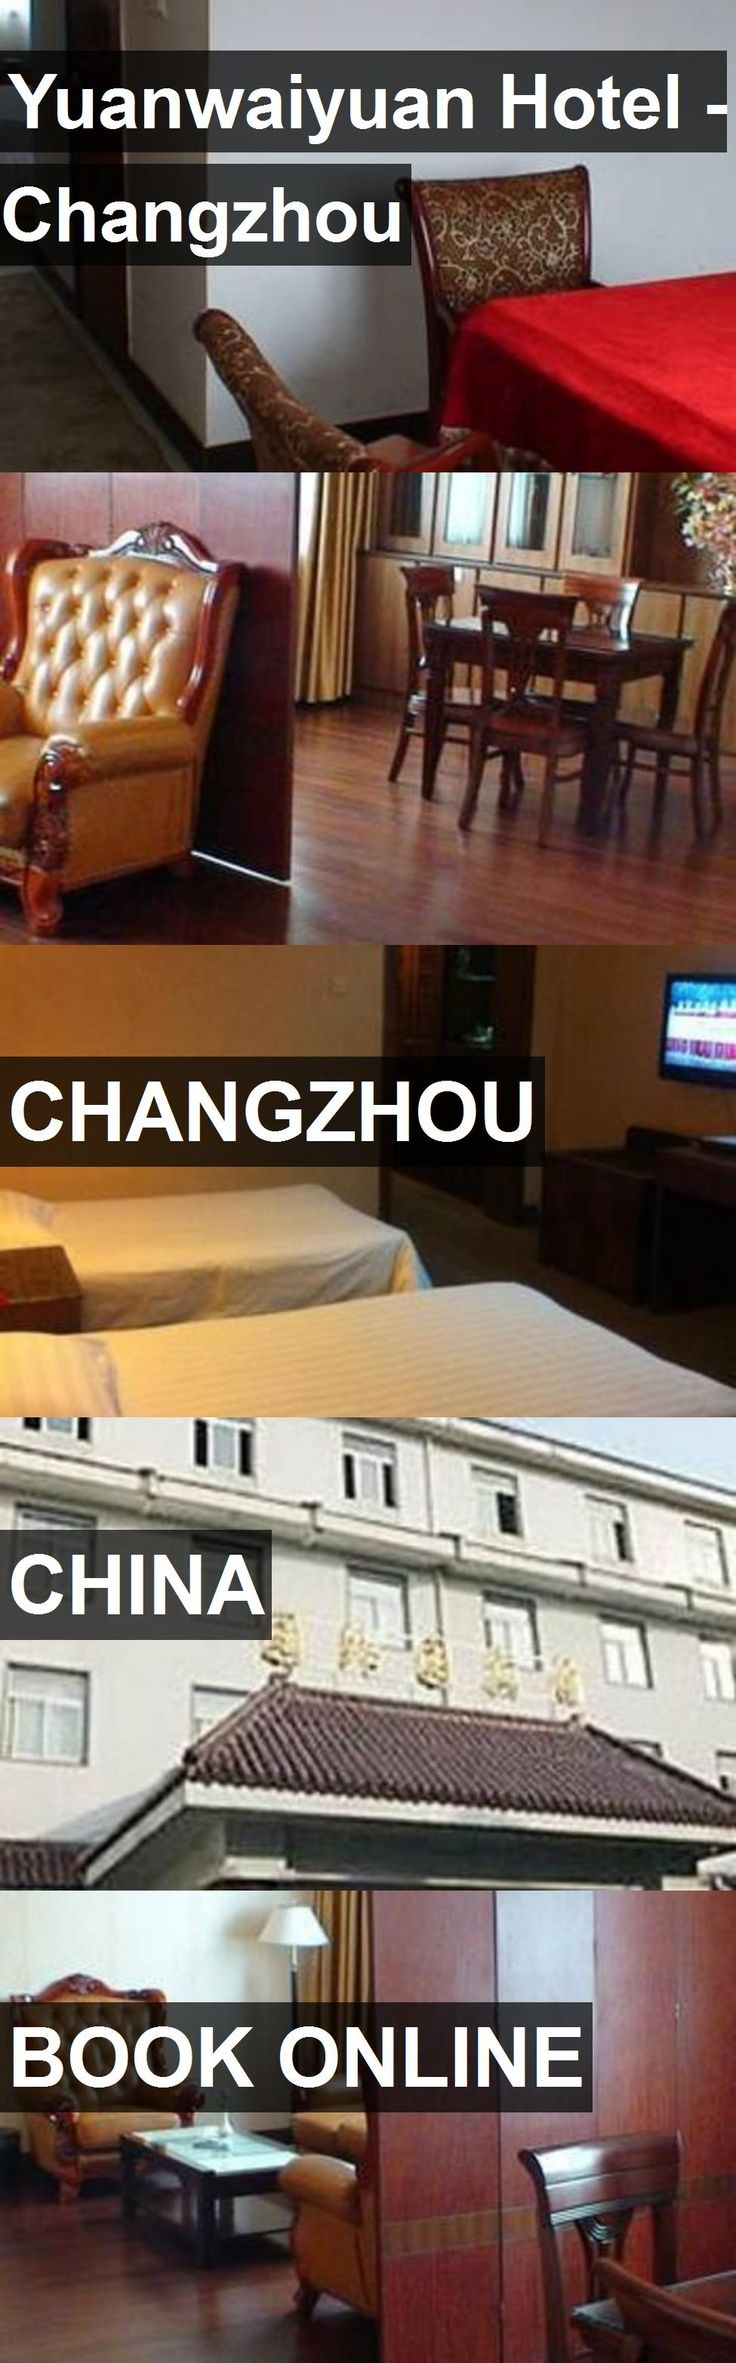 Yuanwaiyuan Hotel - Changzhou in Changzhou, China. For more information, photos, reviews and best prices please follow the link. #China #Changzhou #travel #vacation #hotel